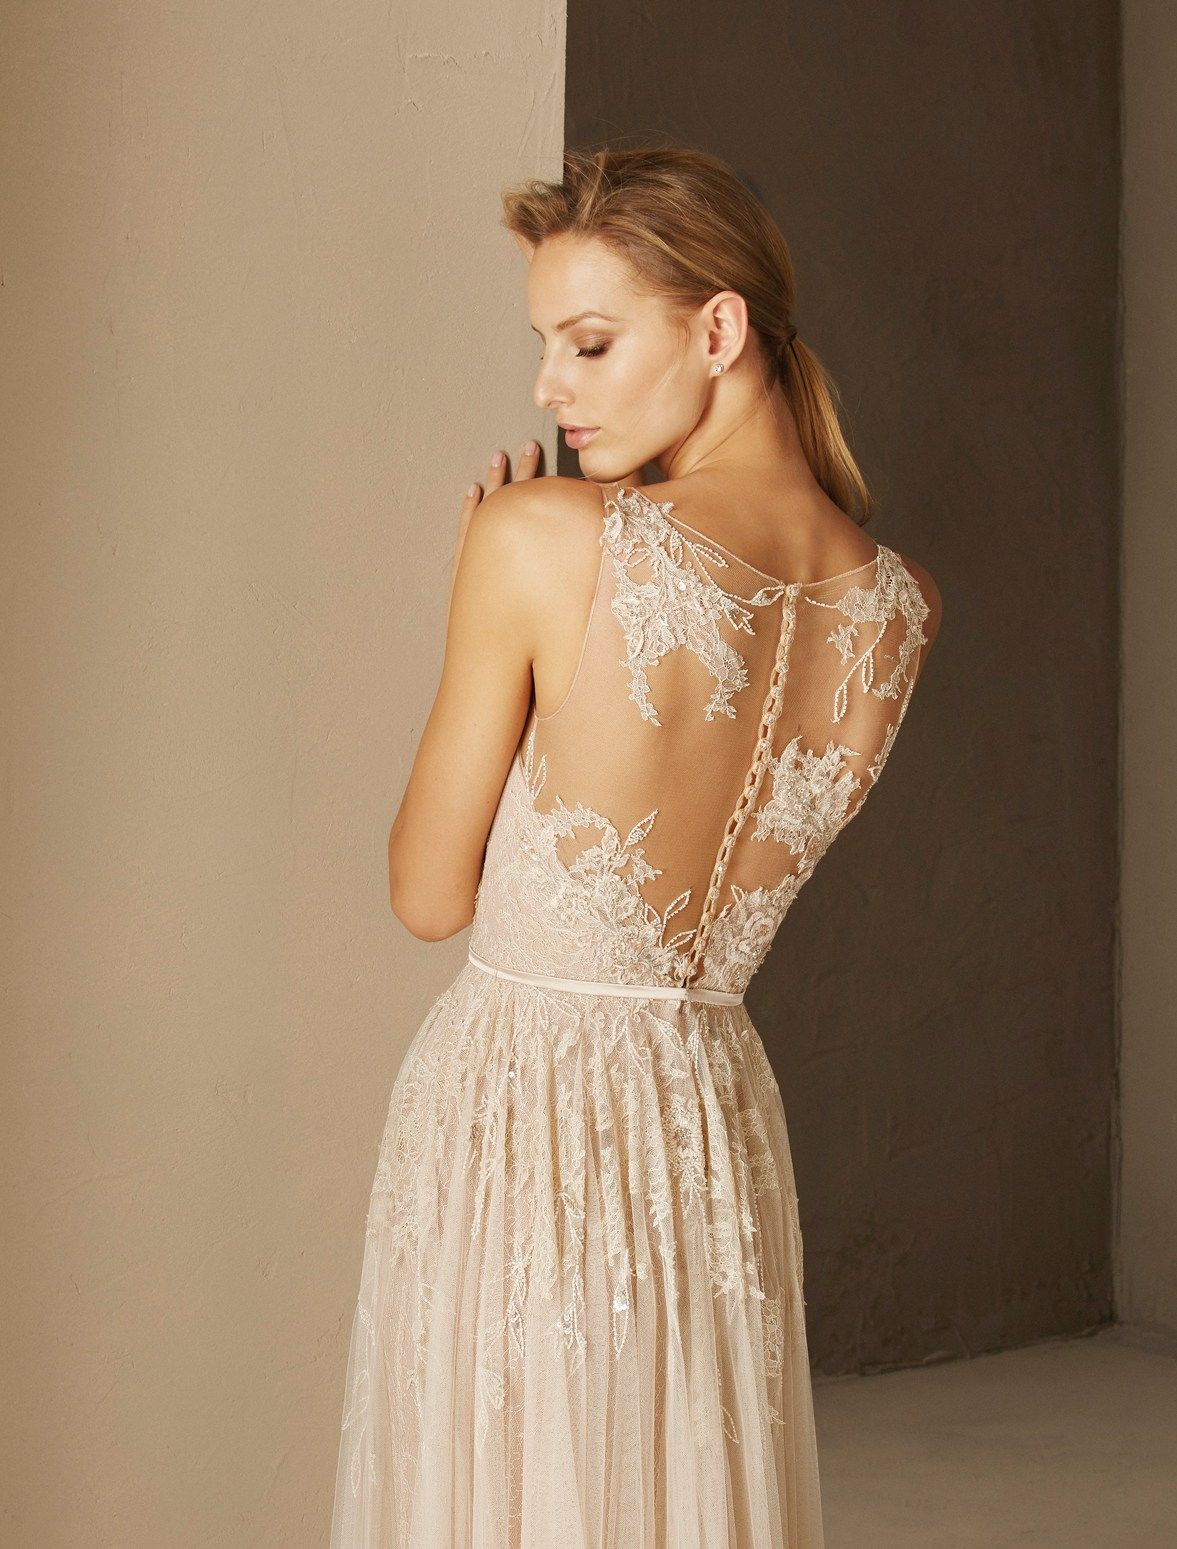 Pronovias cocktail dresses price range